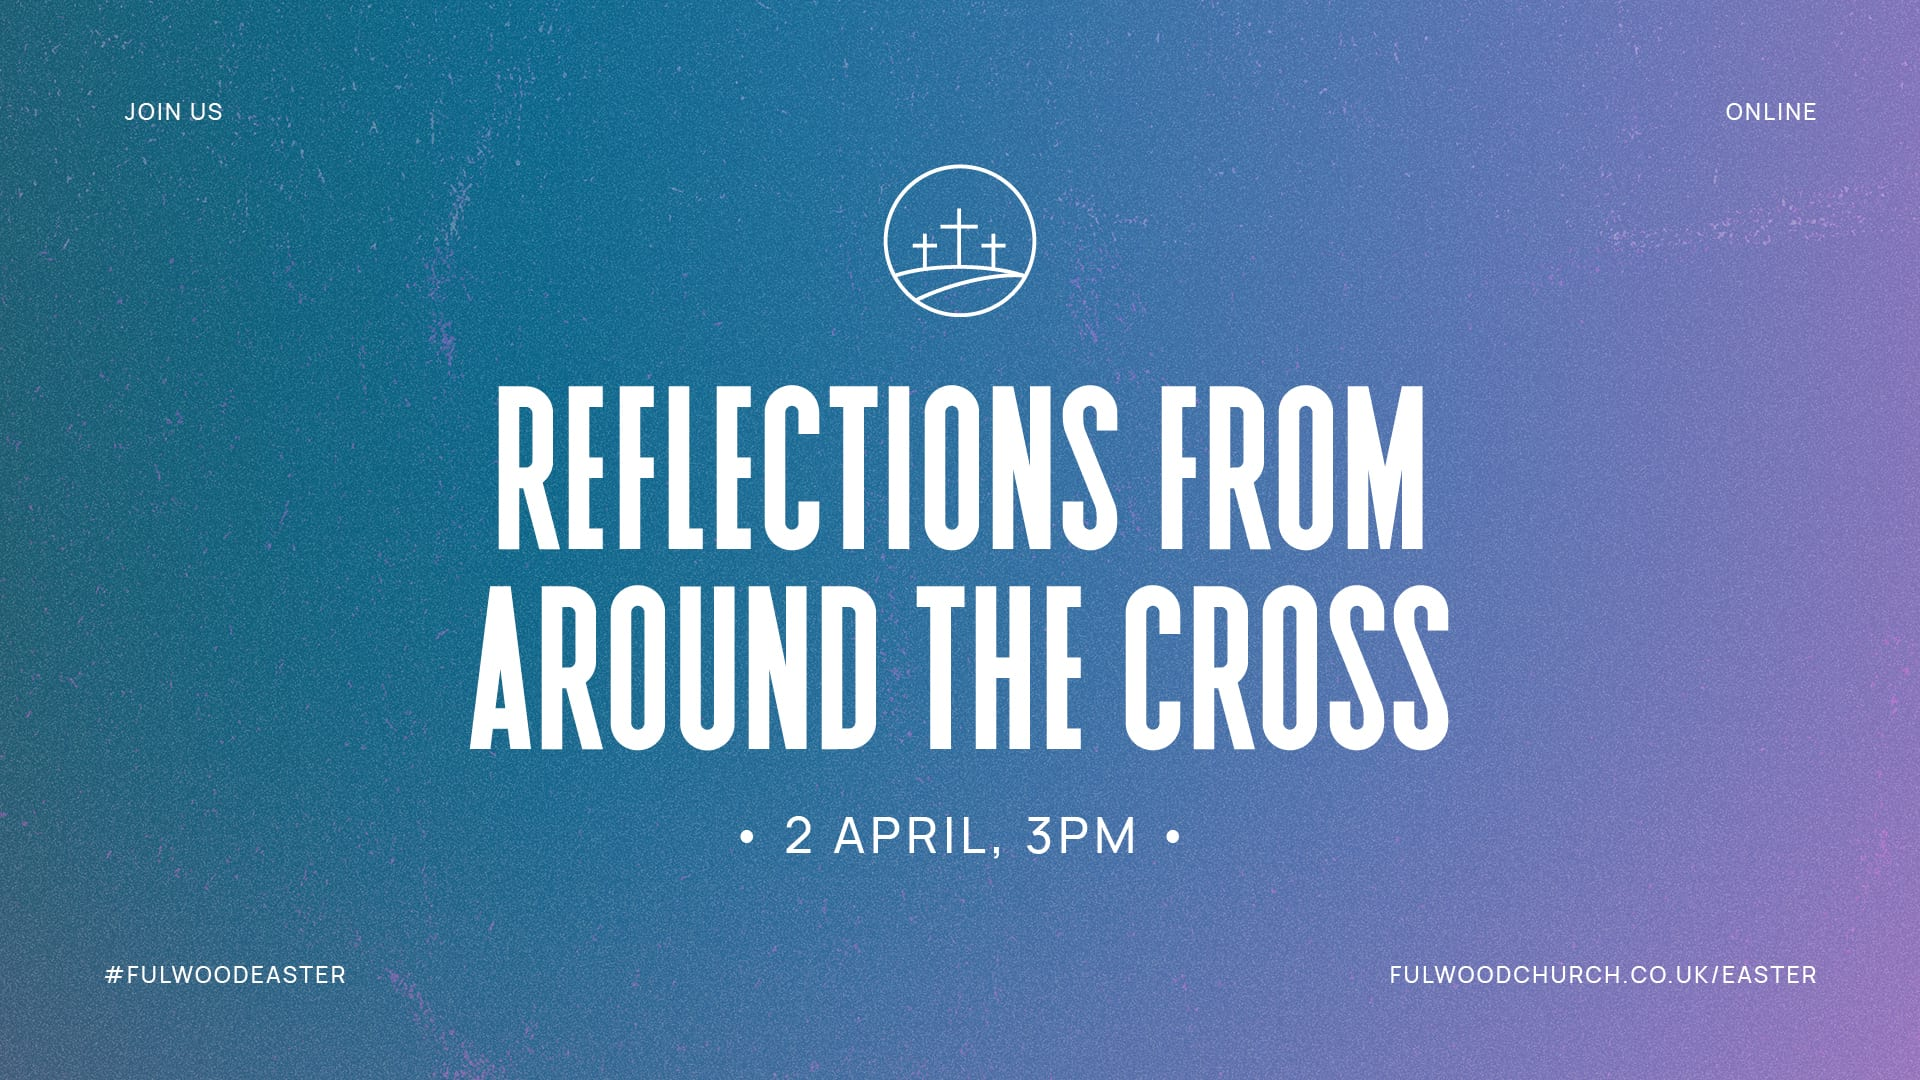 Reflections from around the Cross